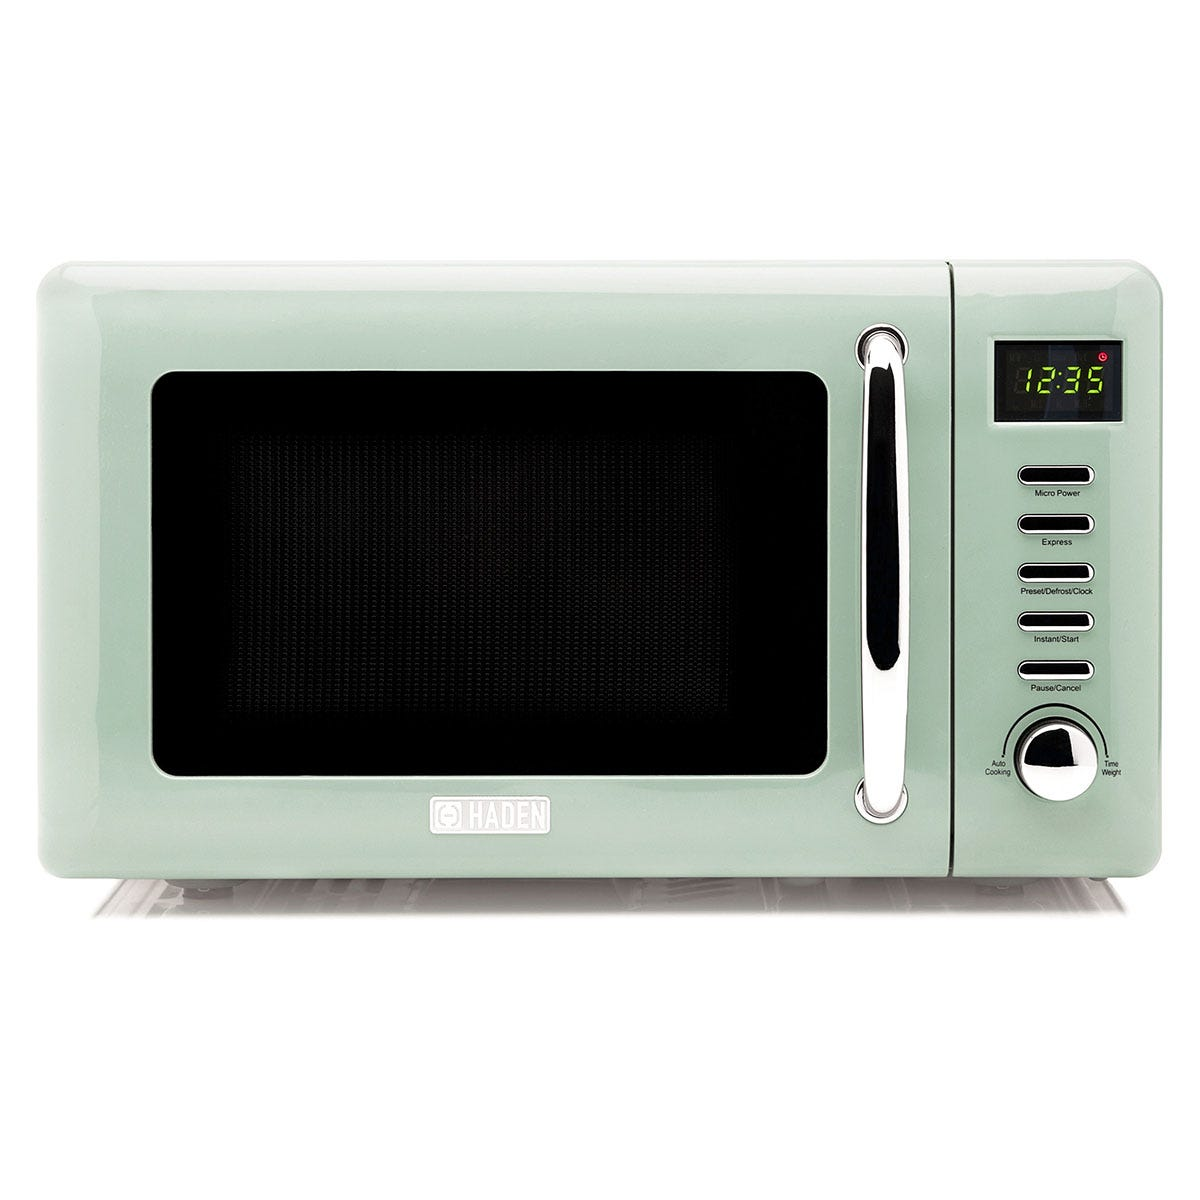 Haden 186683 Cotswold 20L 800W Microwave - Sage